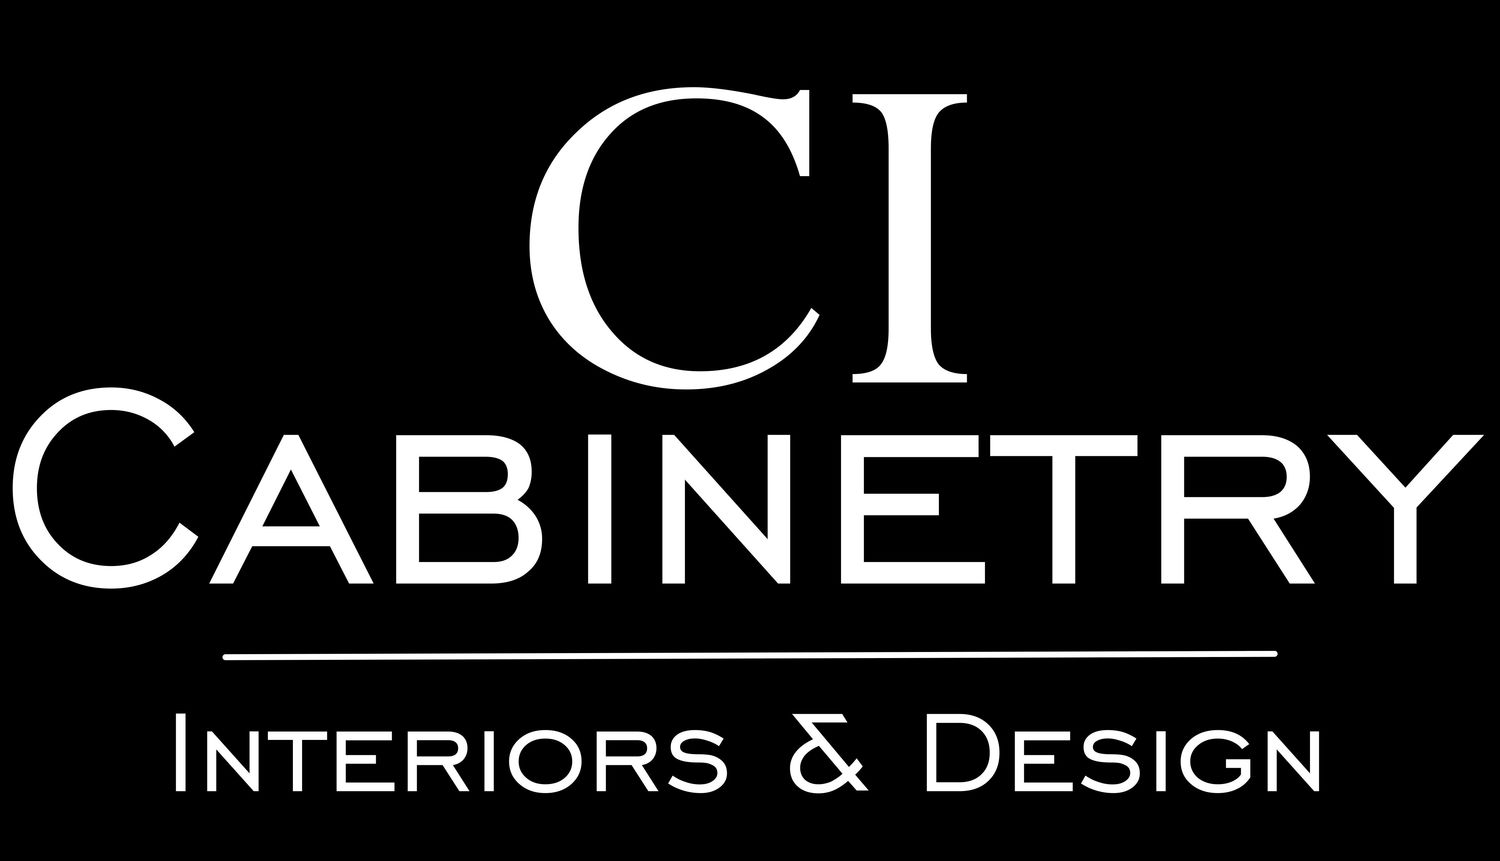 CI Cabinetry-Cabinetry, Kitchen Remodeling, Design & Interiors